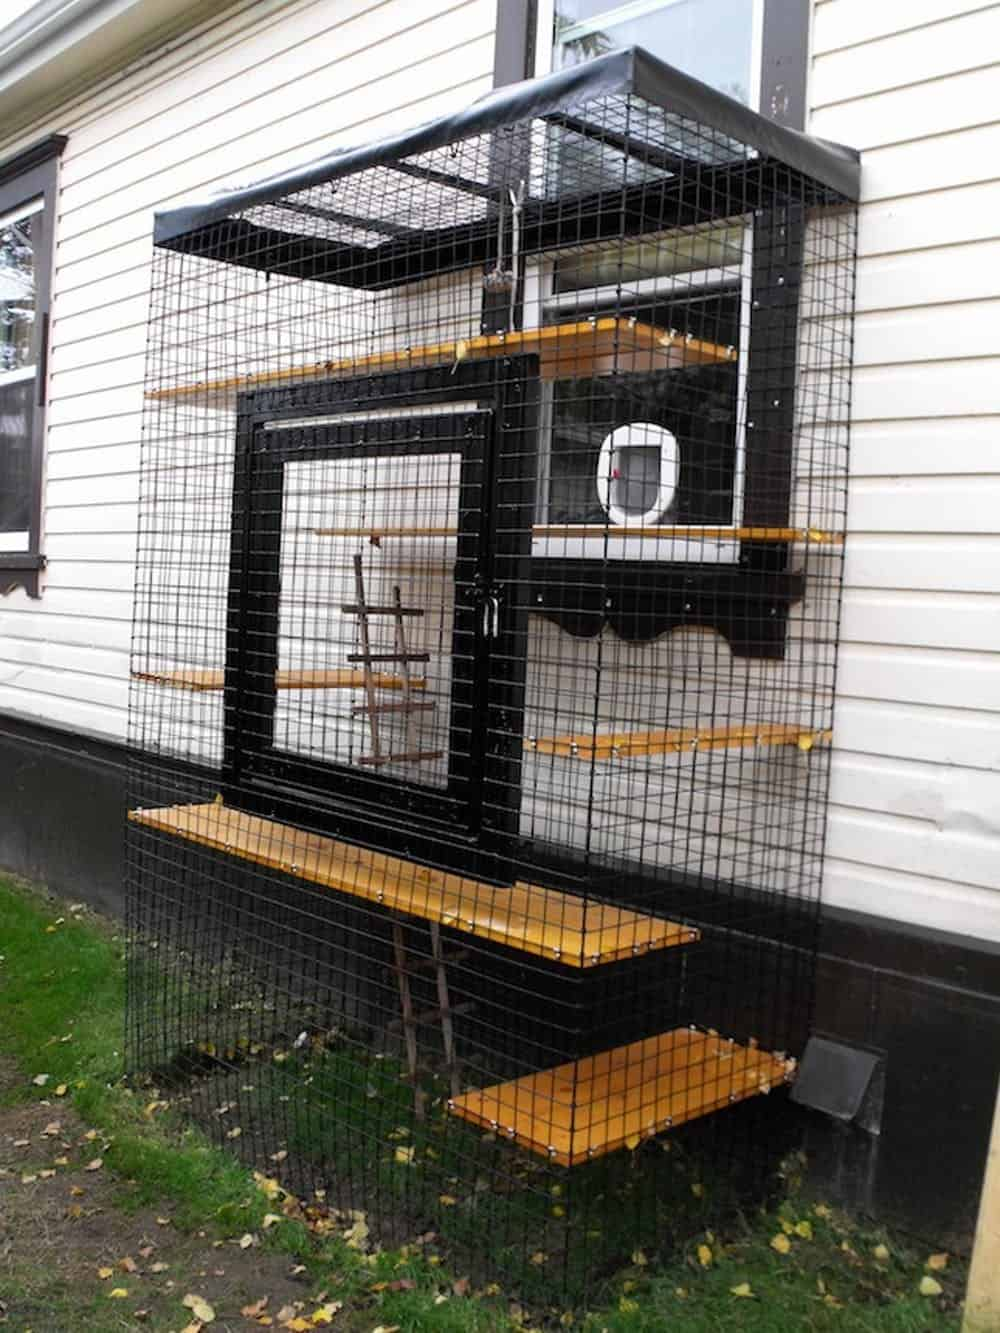 Outdoor cat enclosure with a rain cover